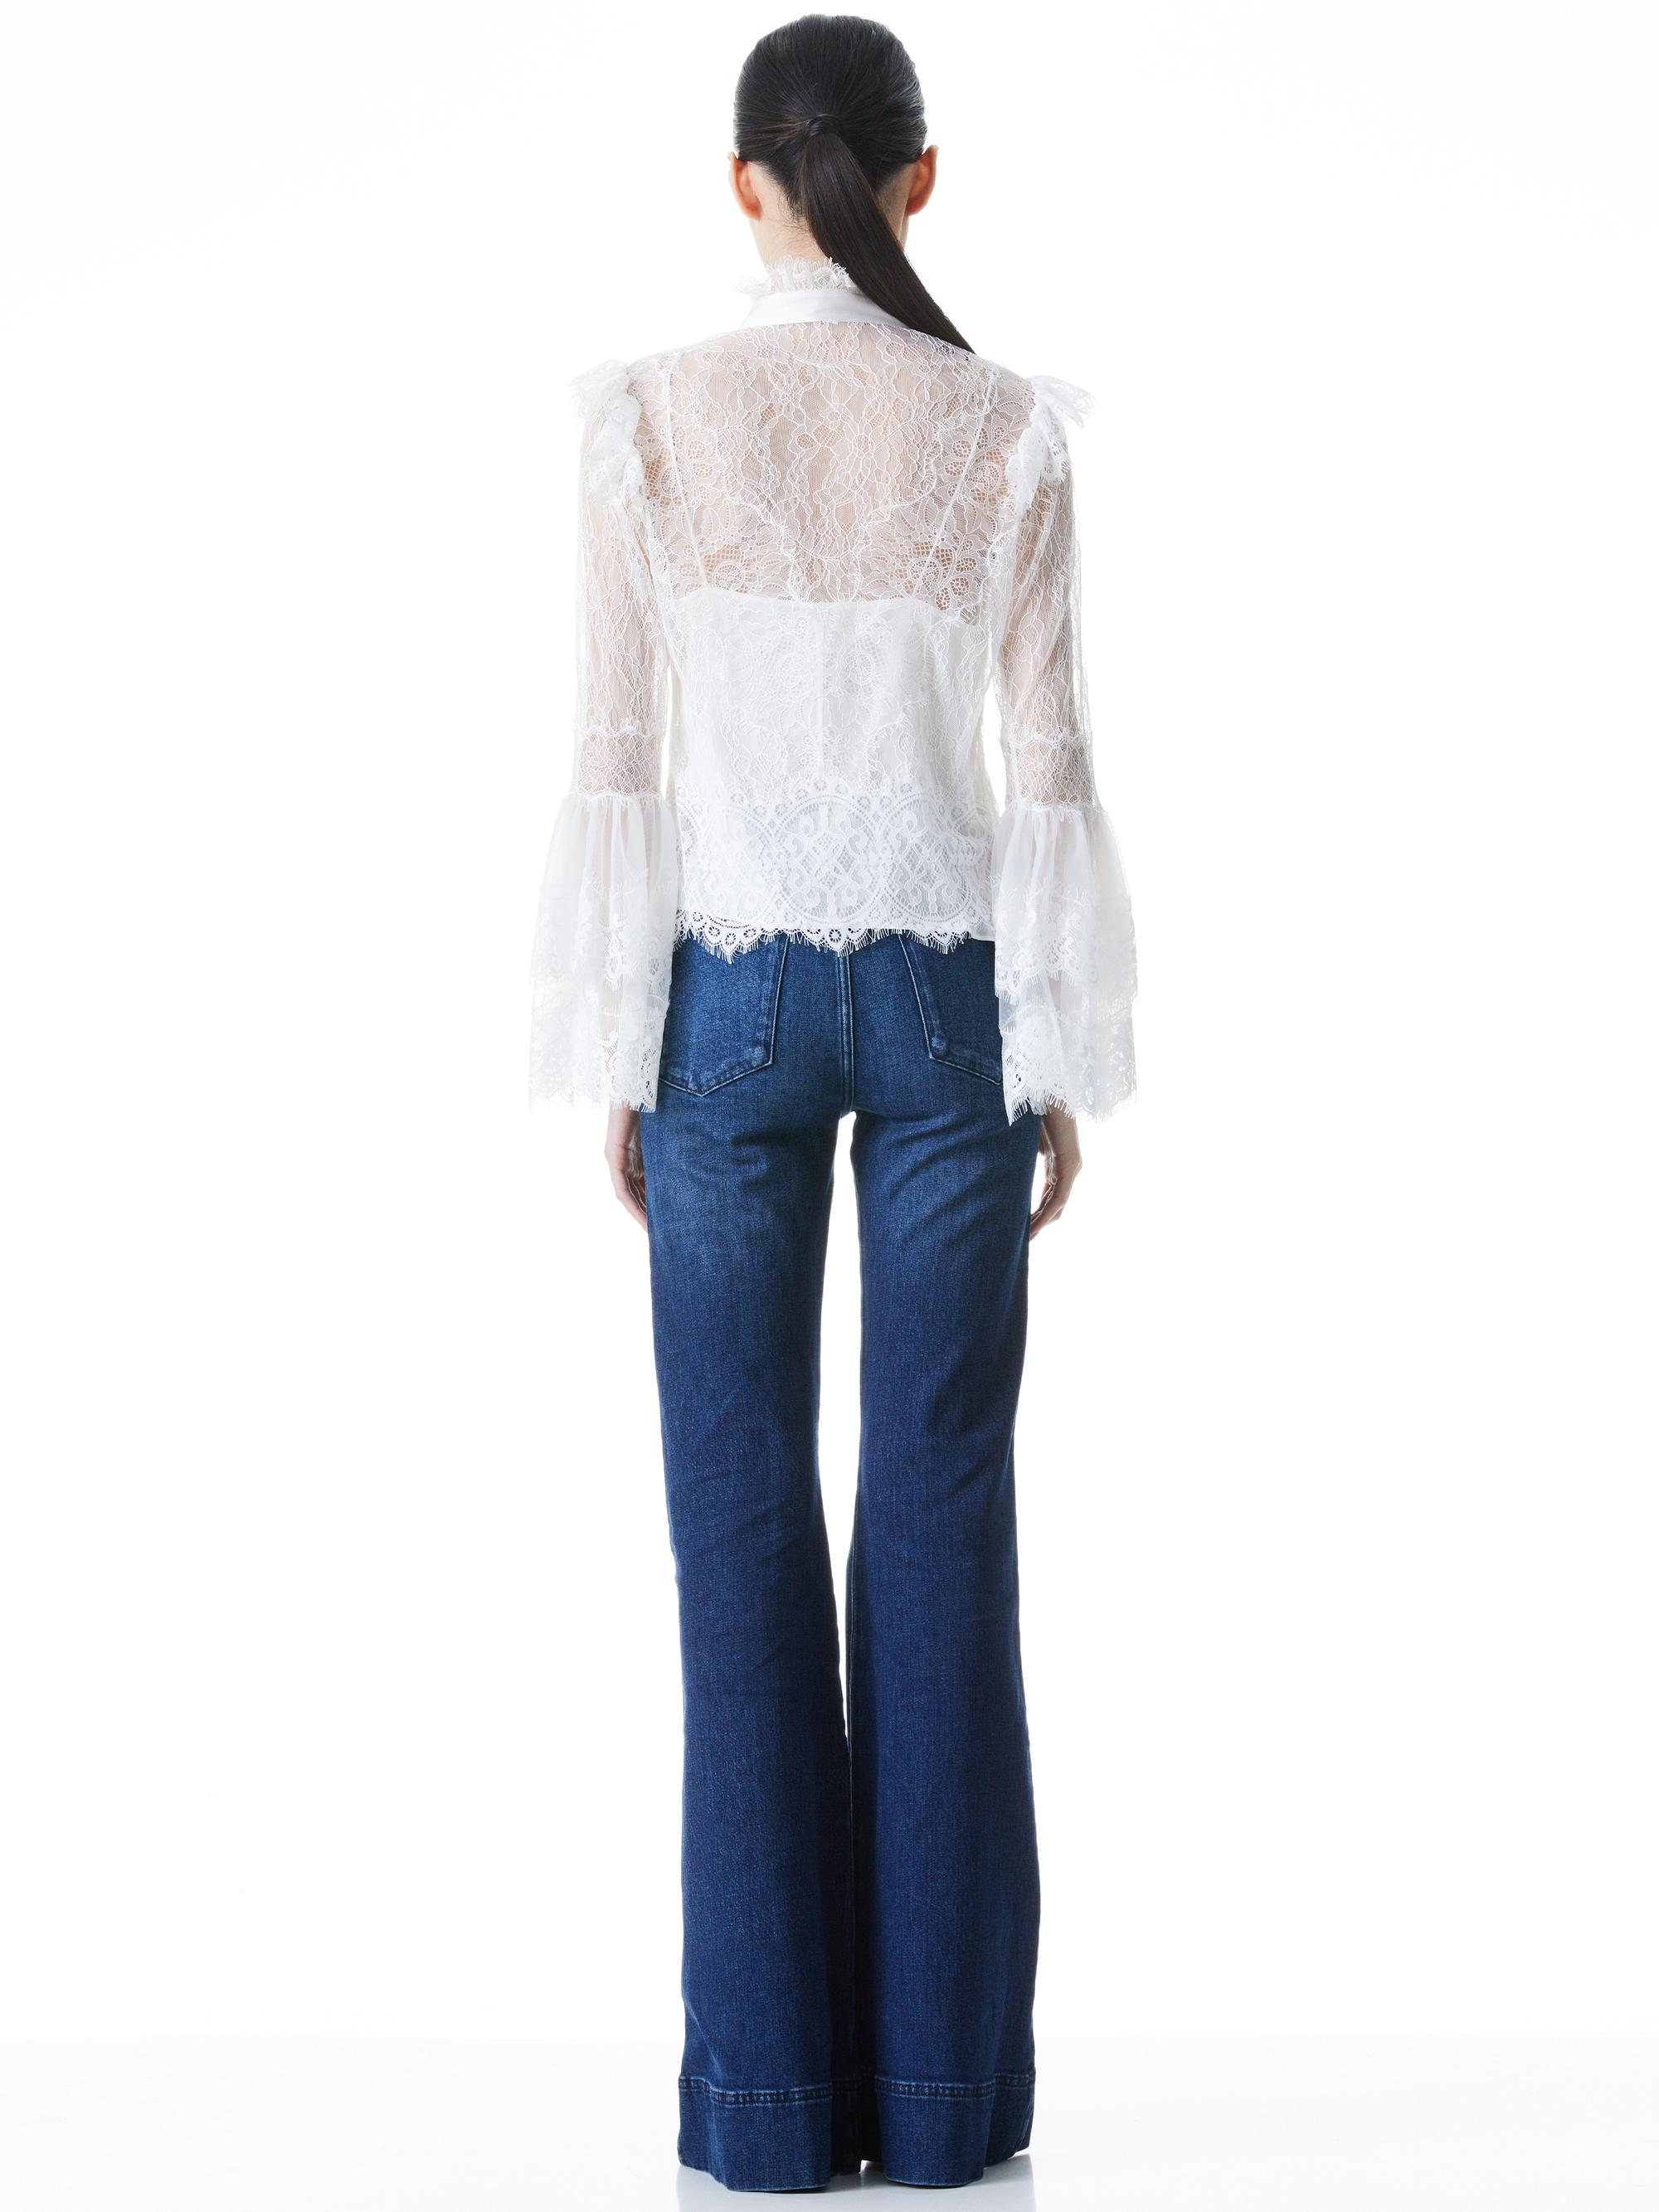 MARLINE LACE BELL SLEEVE BLOUSE